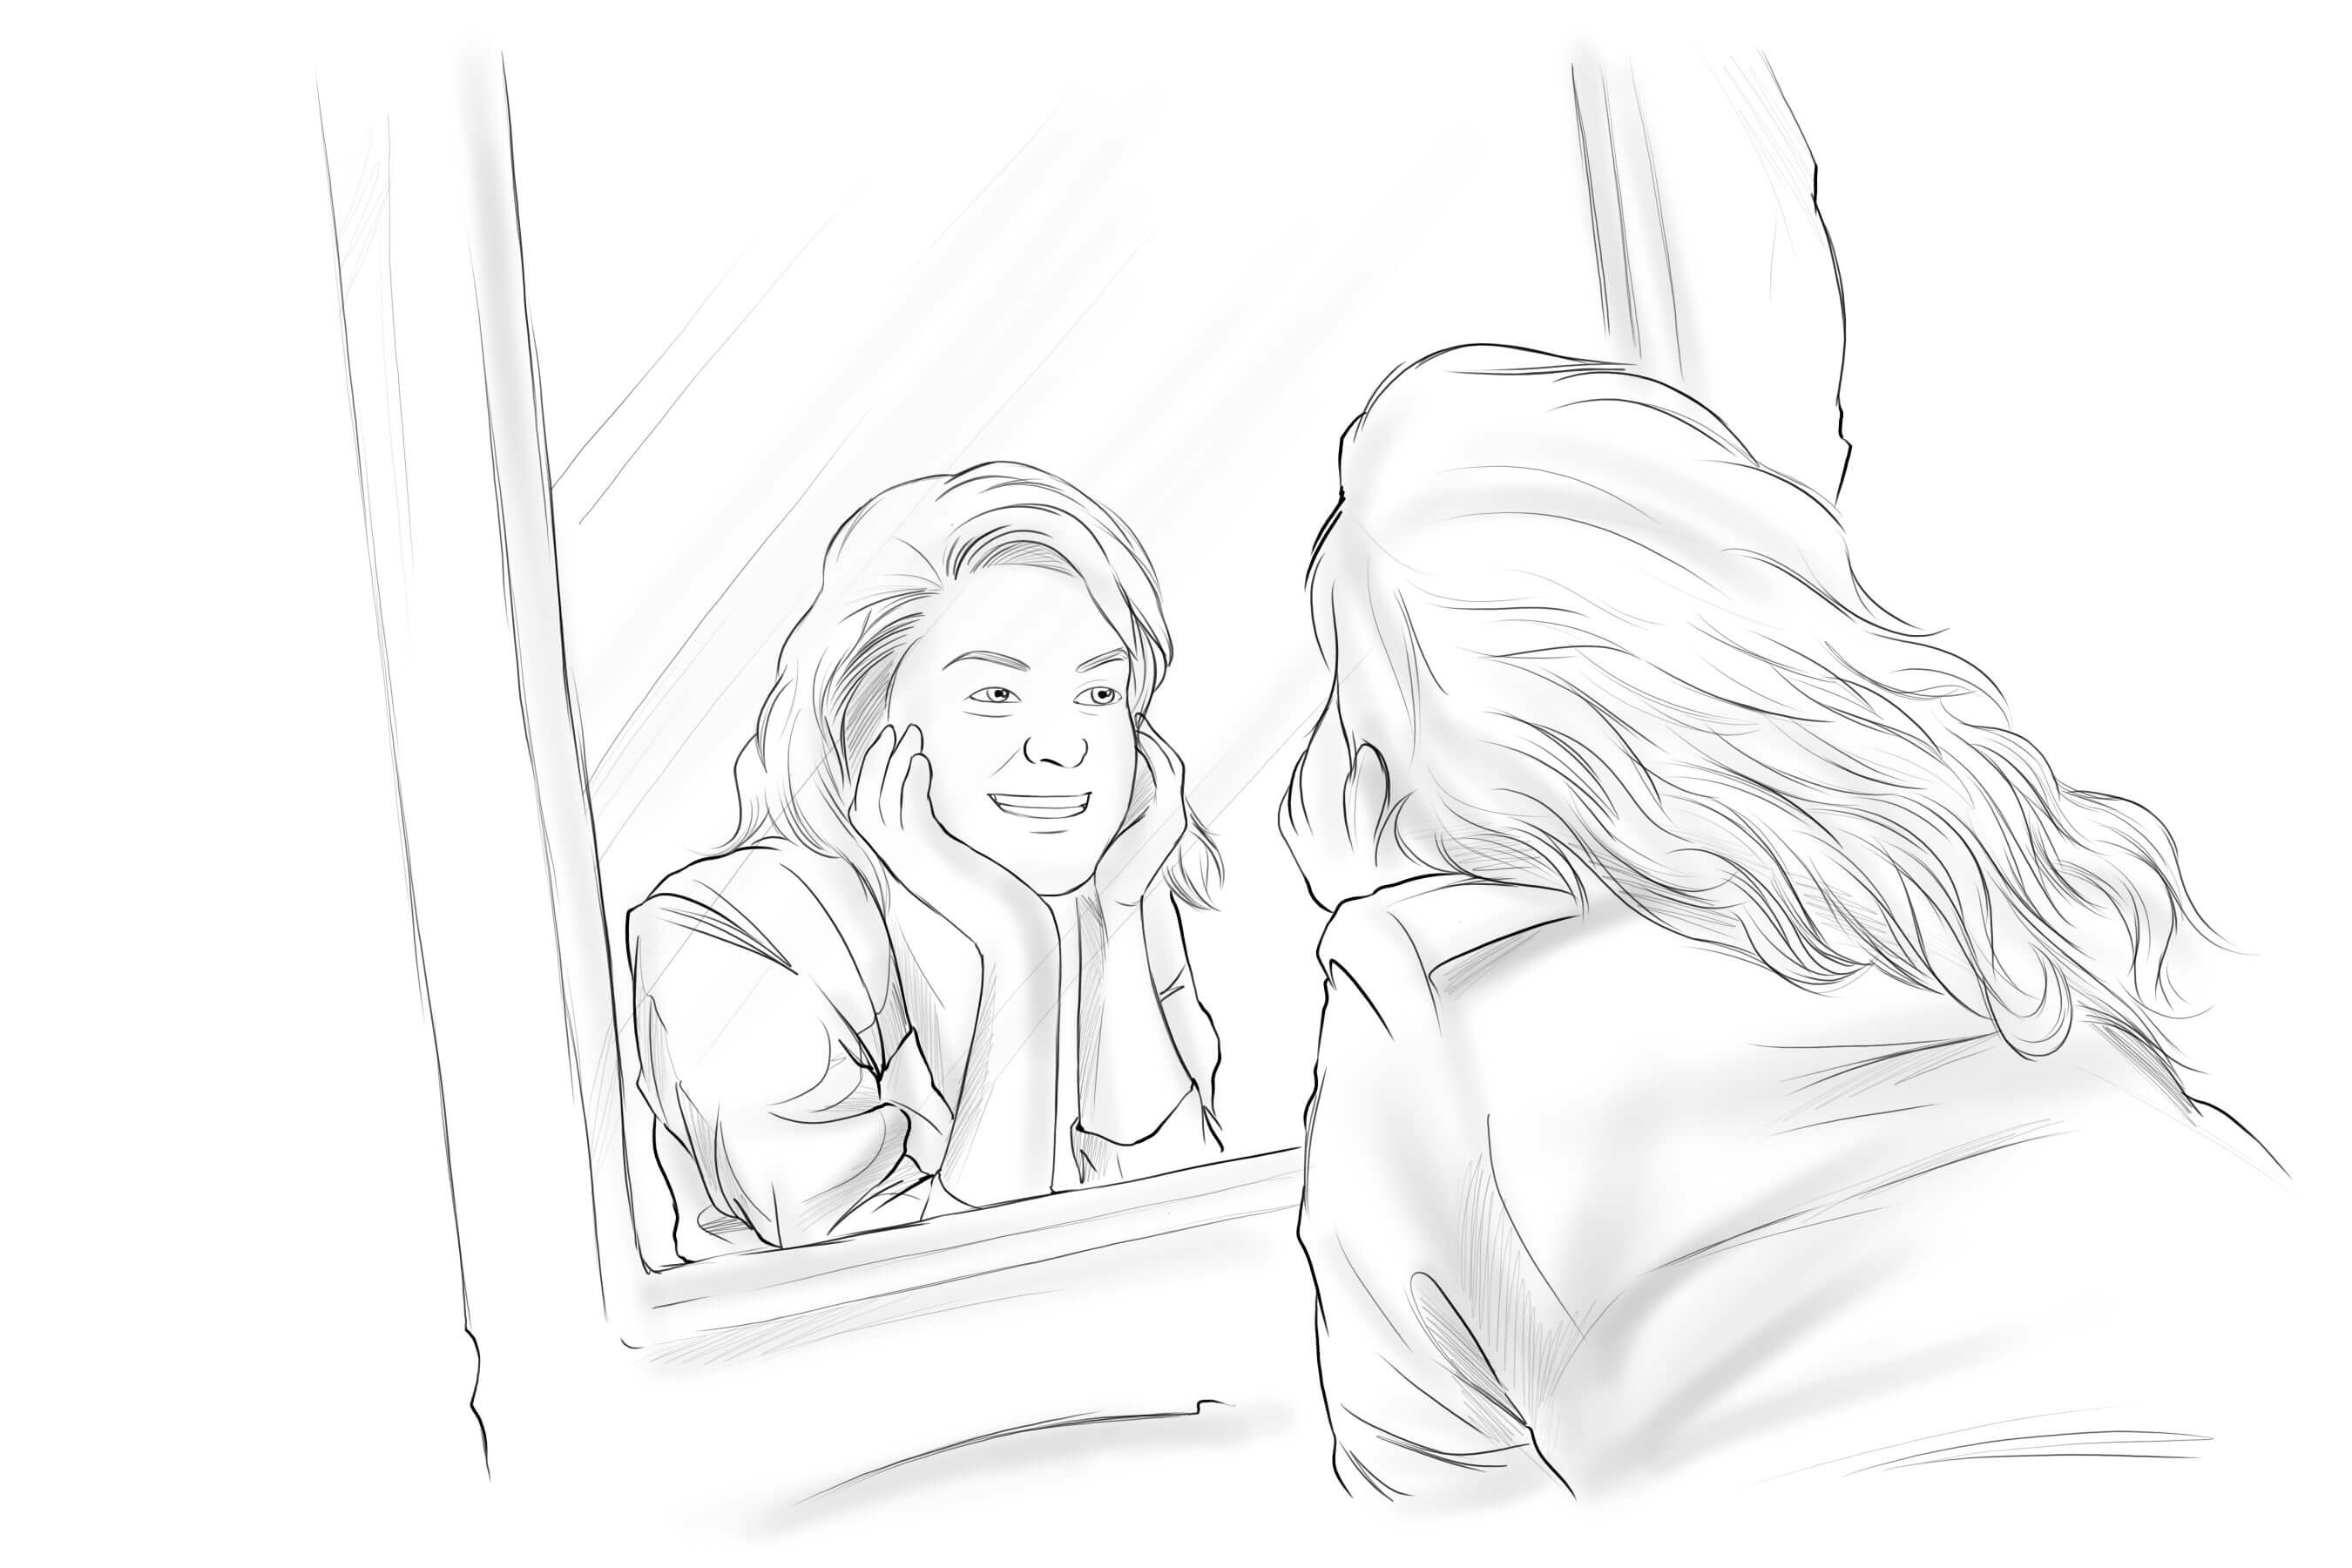 PERSON TALKING TO SELF POSITIVELY IN THE MIRROR